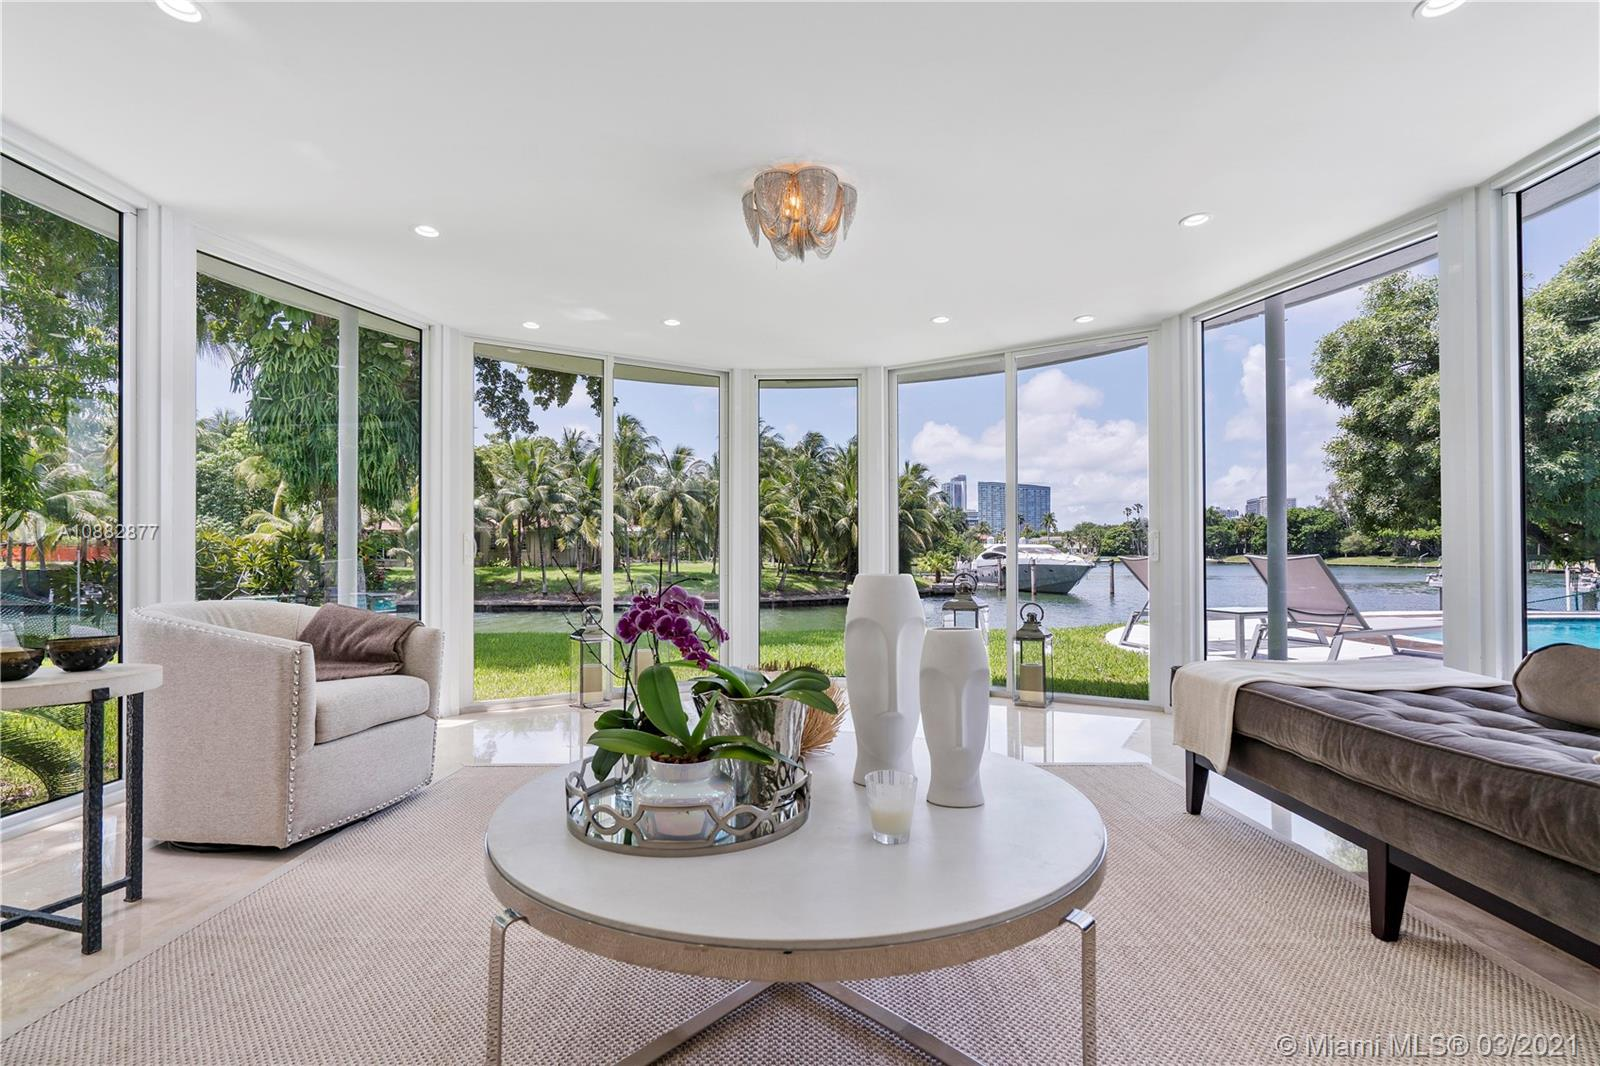 ONE-OF-A KIND PRIME ESTATE WITH 123 FEET OF WATERFRONT AND UNOBSTRUCTED BAY AND SABAL LAKE VIEWS LOCATED IN SOUGHT AFTER BAY POINT PRIVATE GATED COMMUNITY. Make a fresh start or expand up to 9,000 SF this existing mid-century home built by renown architect Wahl Snyder. This south facing 18,656 SF trophy lot offers a protected harbor with dream water and Miami skyline views from all property angles and uninterrupted yearlong coastal breeze. The substantially renovated 3 bed 3 bath current home may be rented or occupied during the design phase. This exclusive coveted community offers private roads patrolled by 3 security guards 24/7. Perfect for families looking to be close to the best private schools in Miami. Close to the Beach, Design District, Midtown, Wynwood, Museum and Art's District.